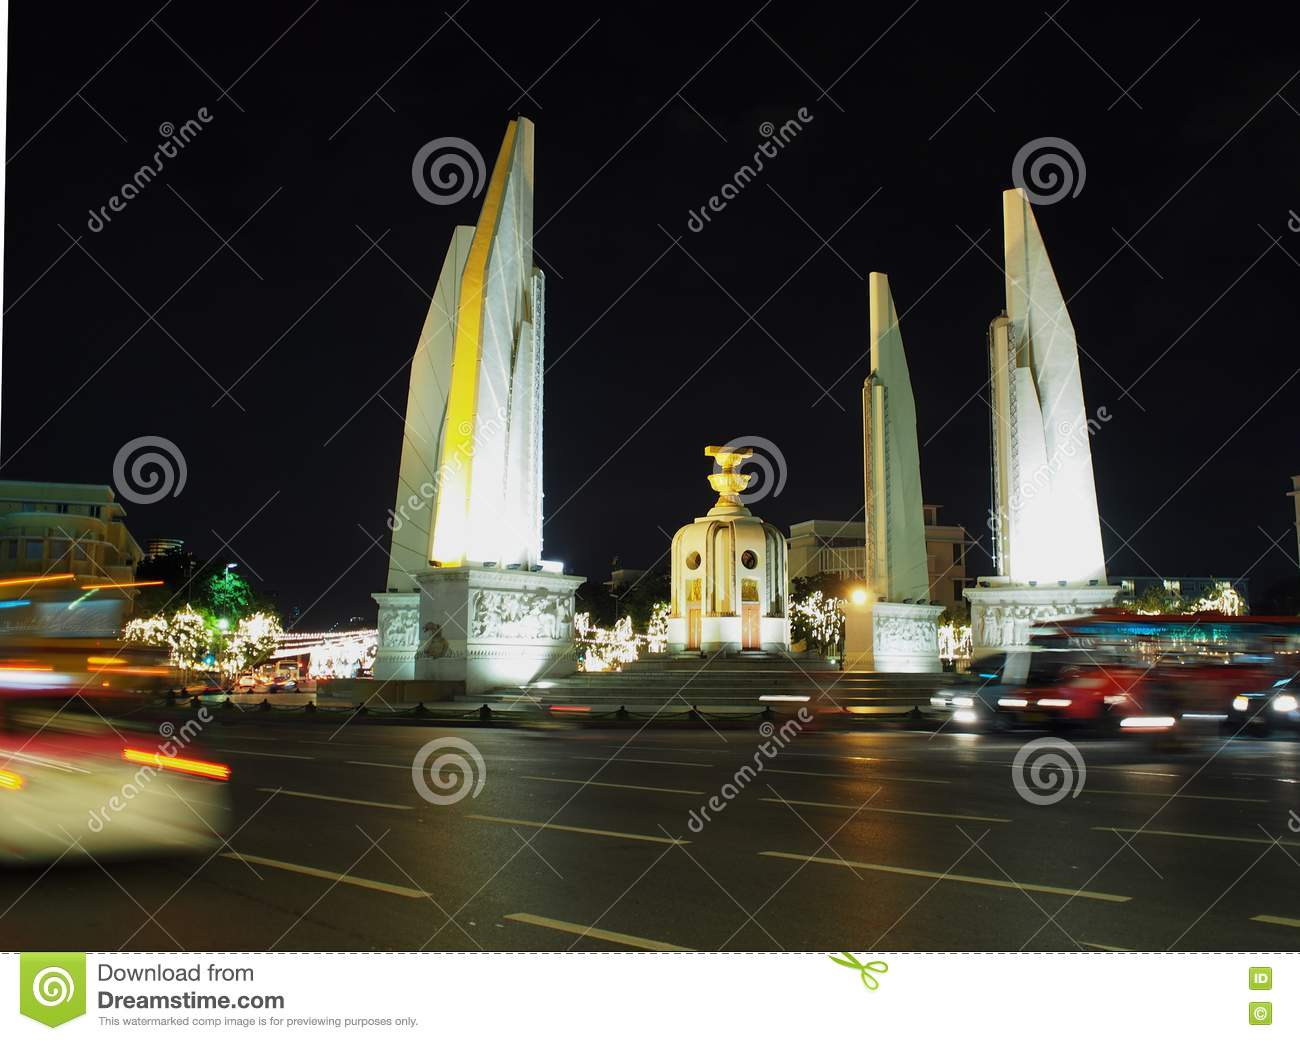 Democracy monument middle of RATCHA DAMNOEN road